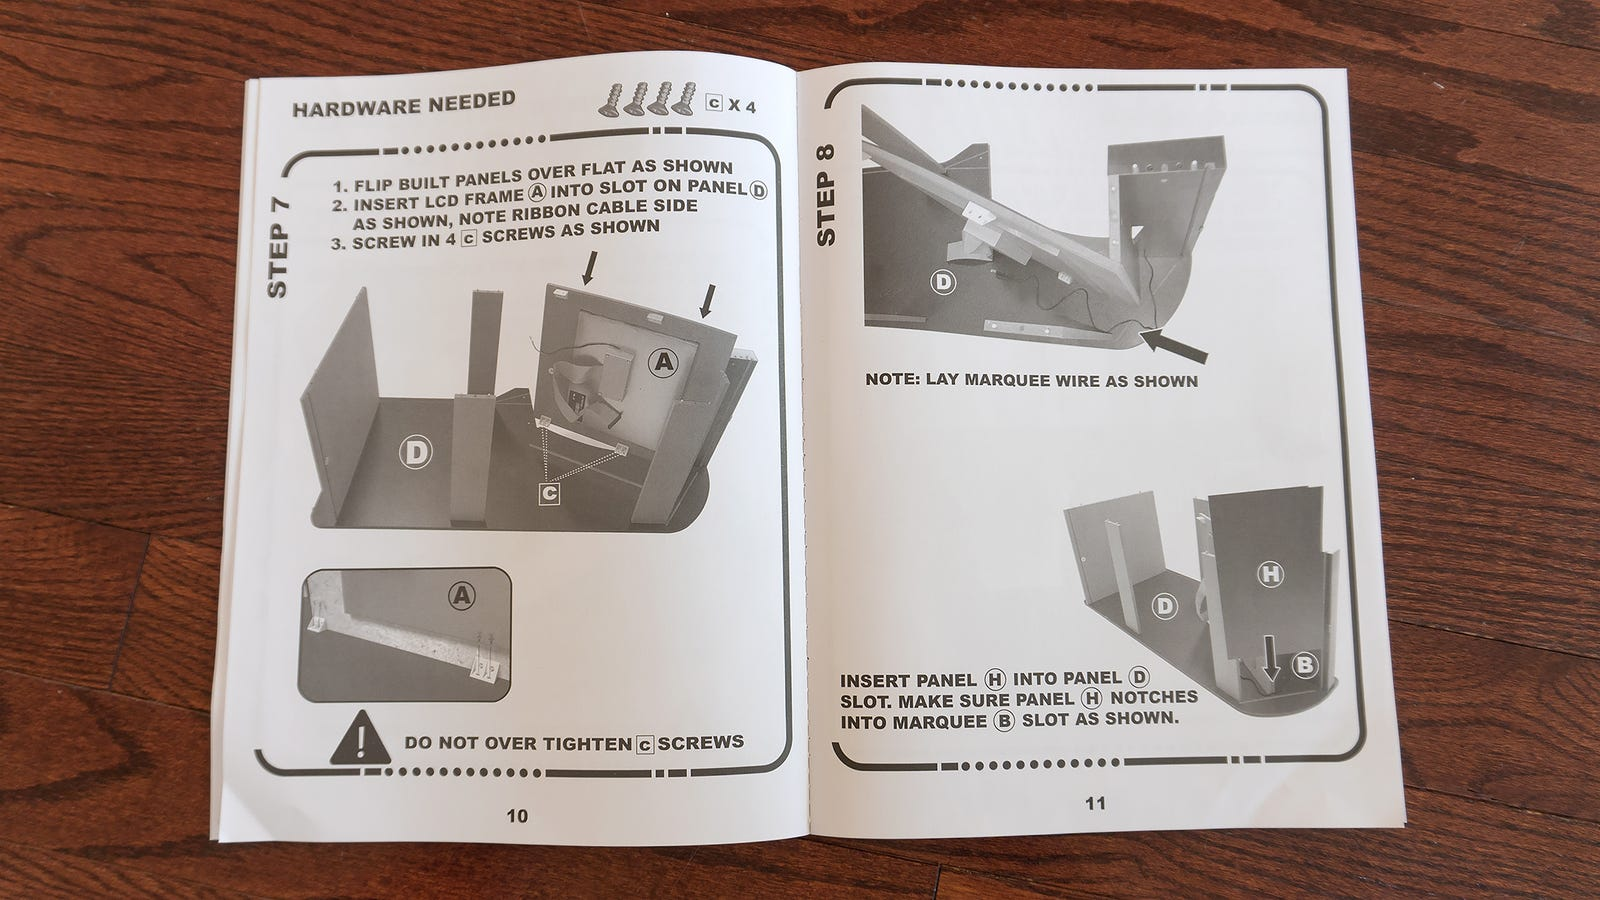 Arcade1UP's instruction manuals are well laid out and easy to follow, although I do prefer Ikea's use of illustrations over the use of product photos here.